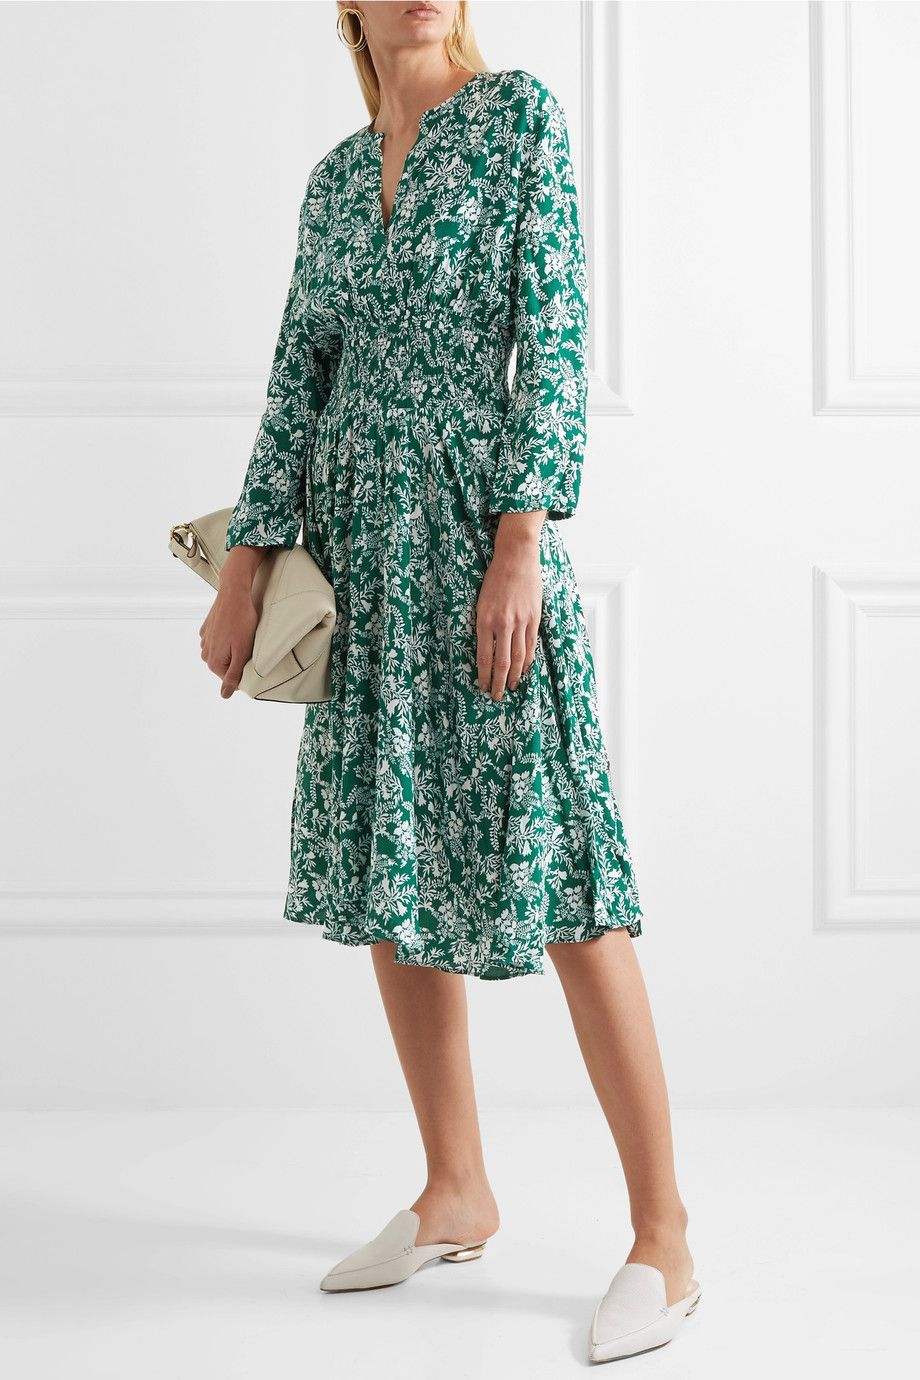 Maje - Rayelle shirred floral-print crepe dress